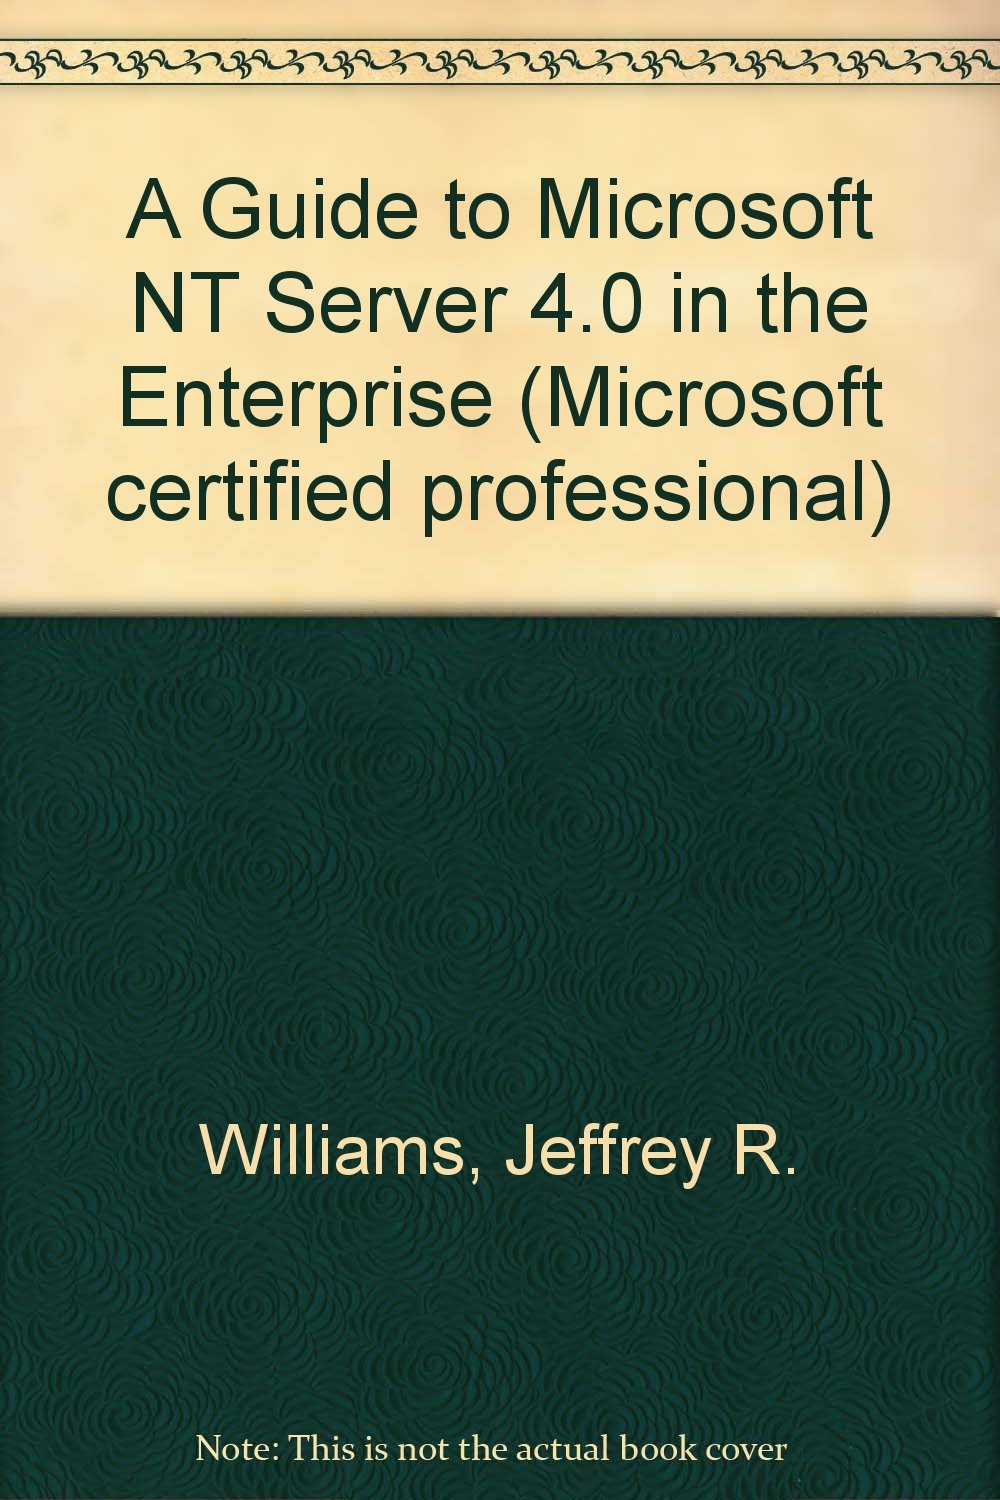 A Guide To Microsoft Windows Nt Server 40 In The Enterprise